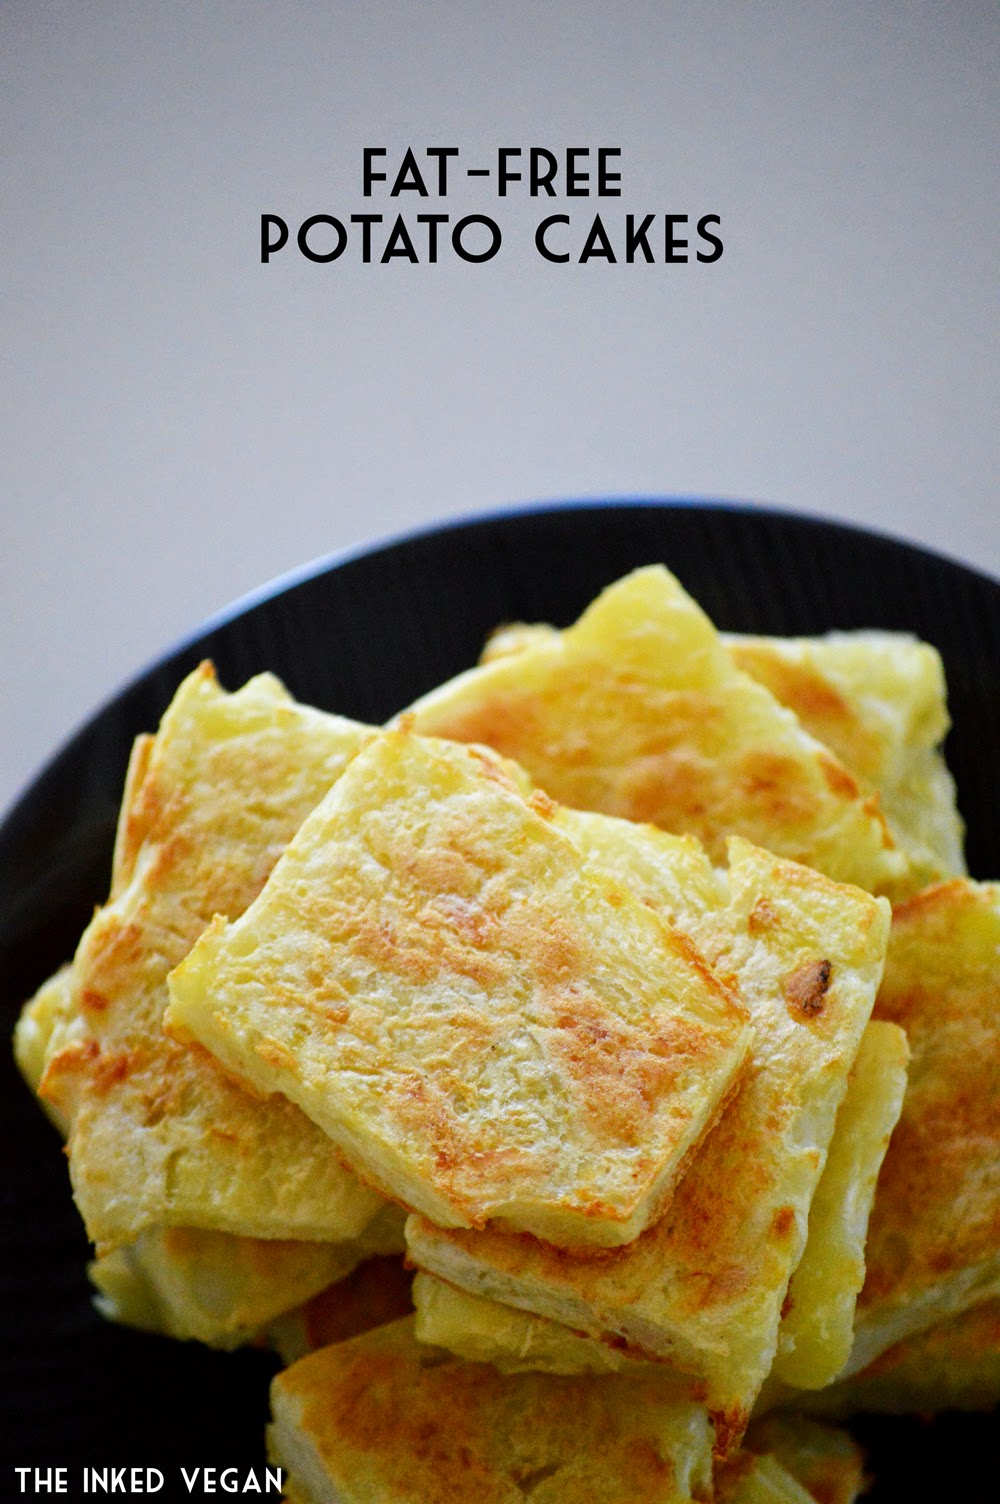 Making Potato Cakes From Instant Potatoes